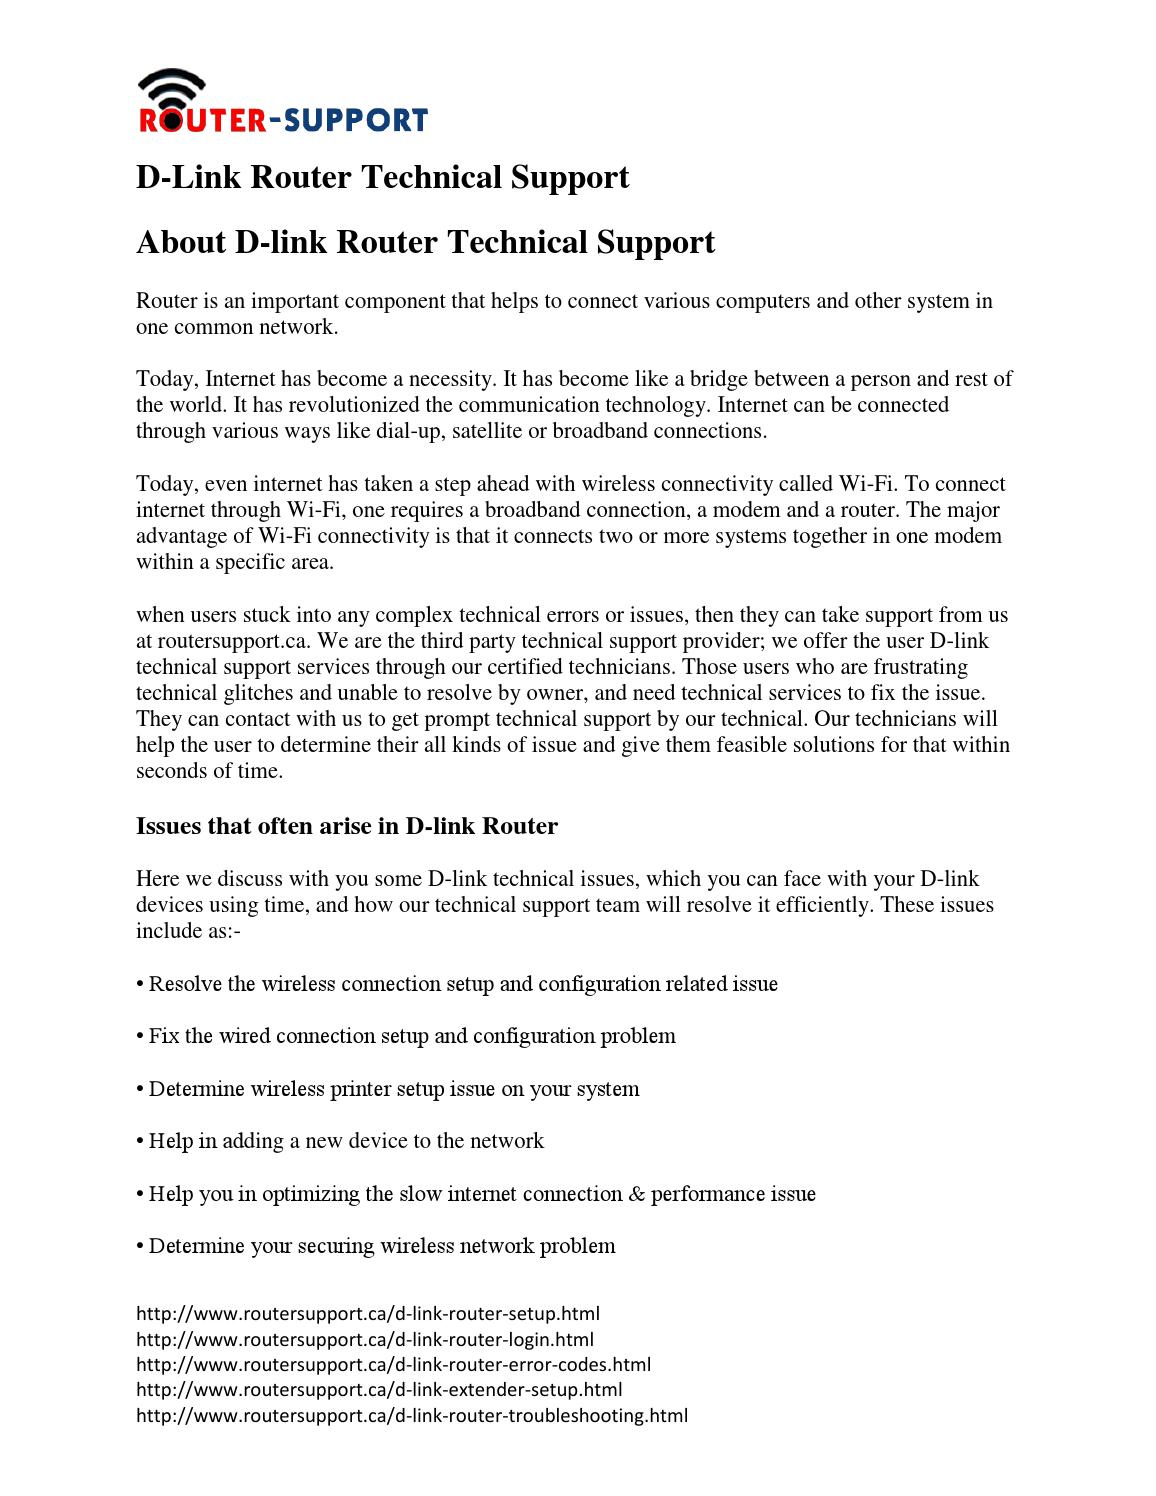 D link router technical support by Routersupportcanada - issuu